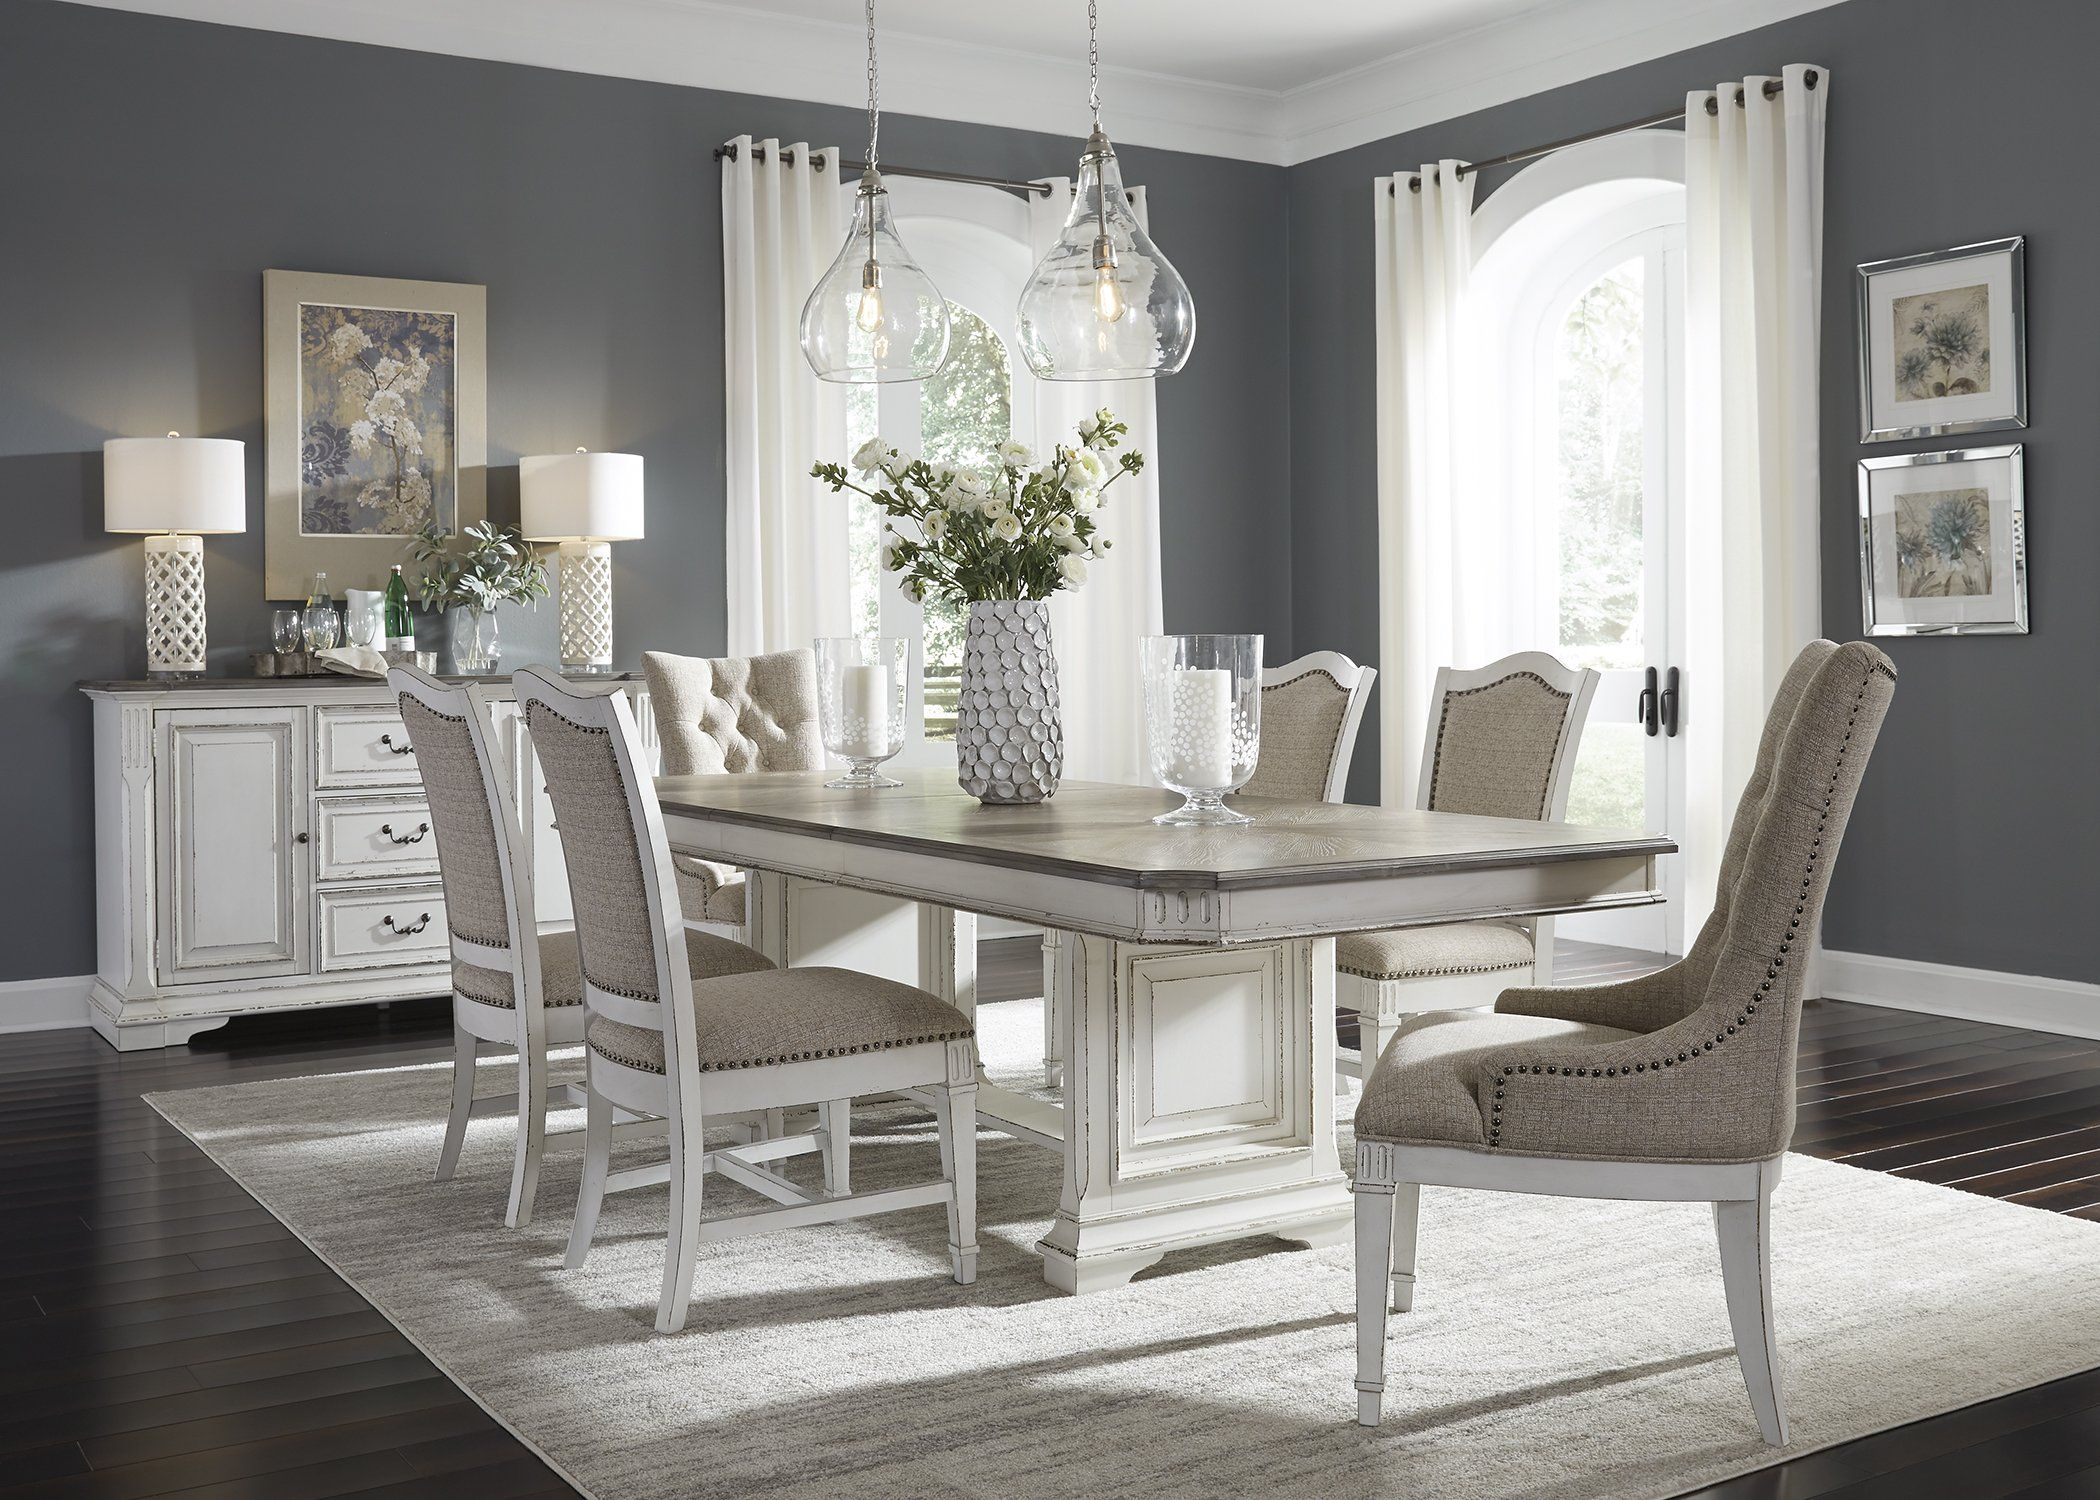 Best Abbey Park Dining 7 Piece Trestle Table Set Dinning Room 400 x 300